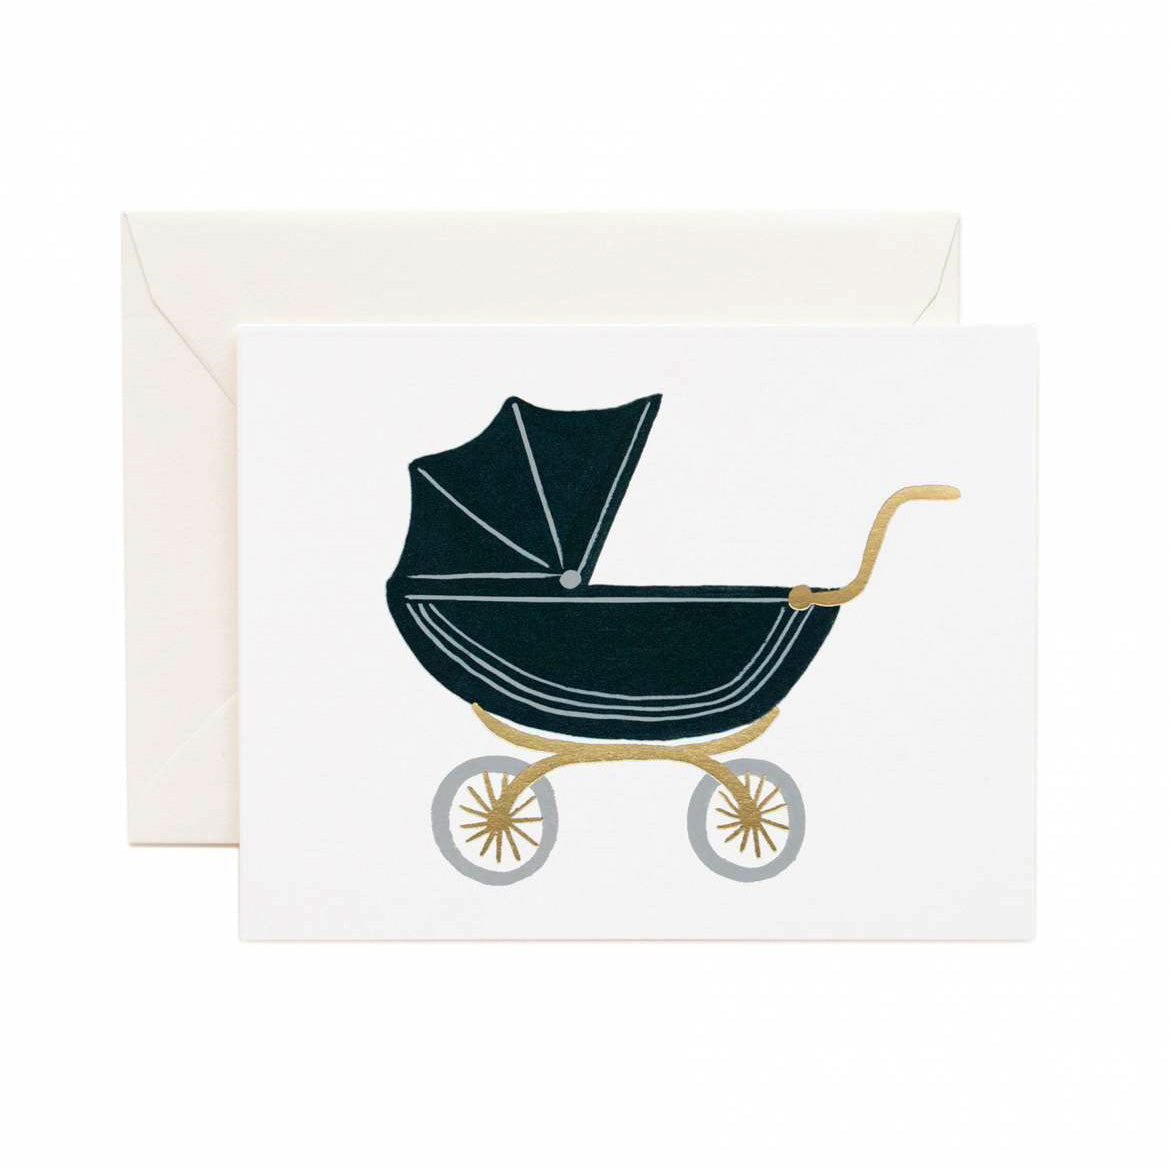 Tarjeta Pram de Rifle Paper Co. para bautizo o baby shower